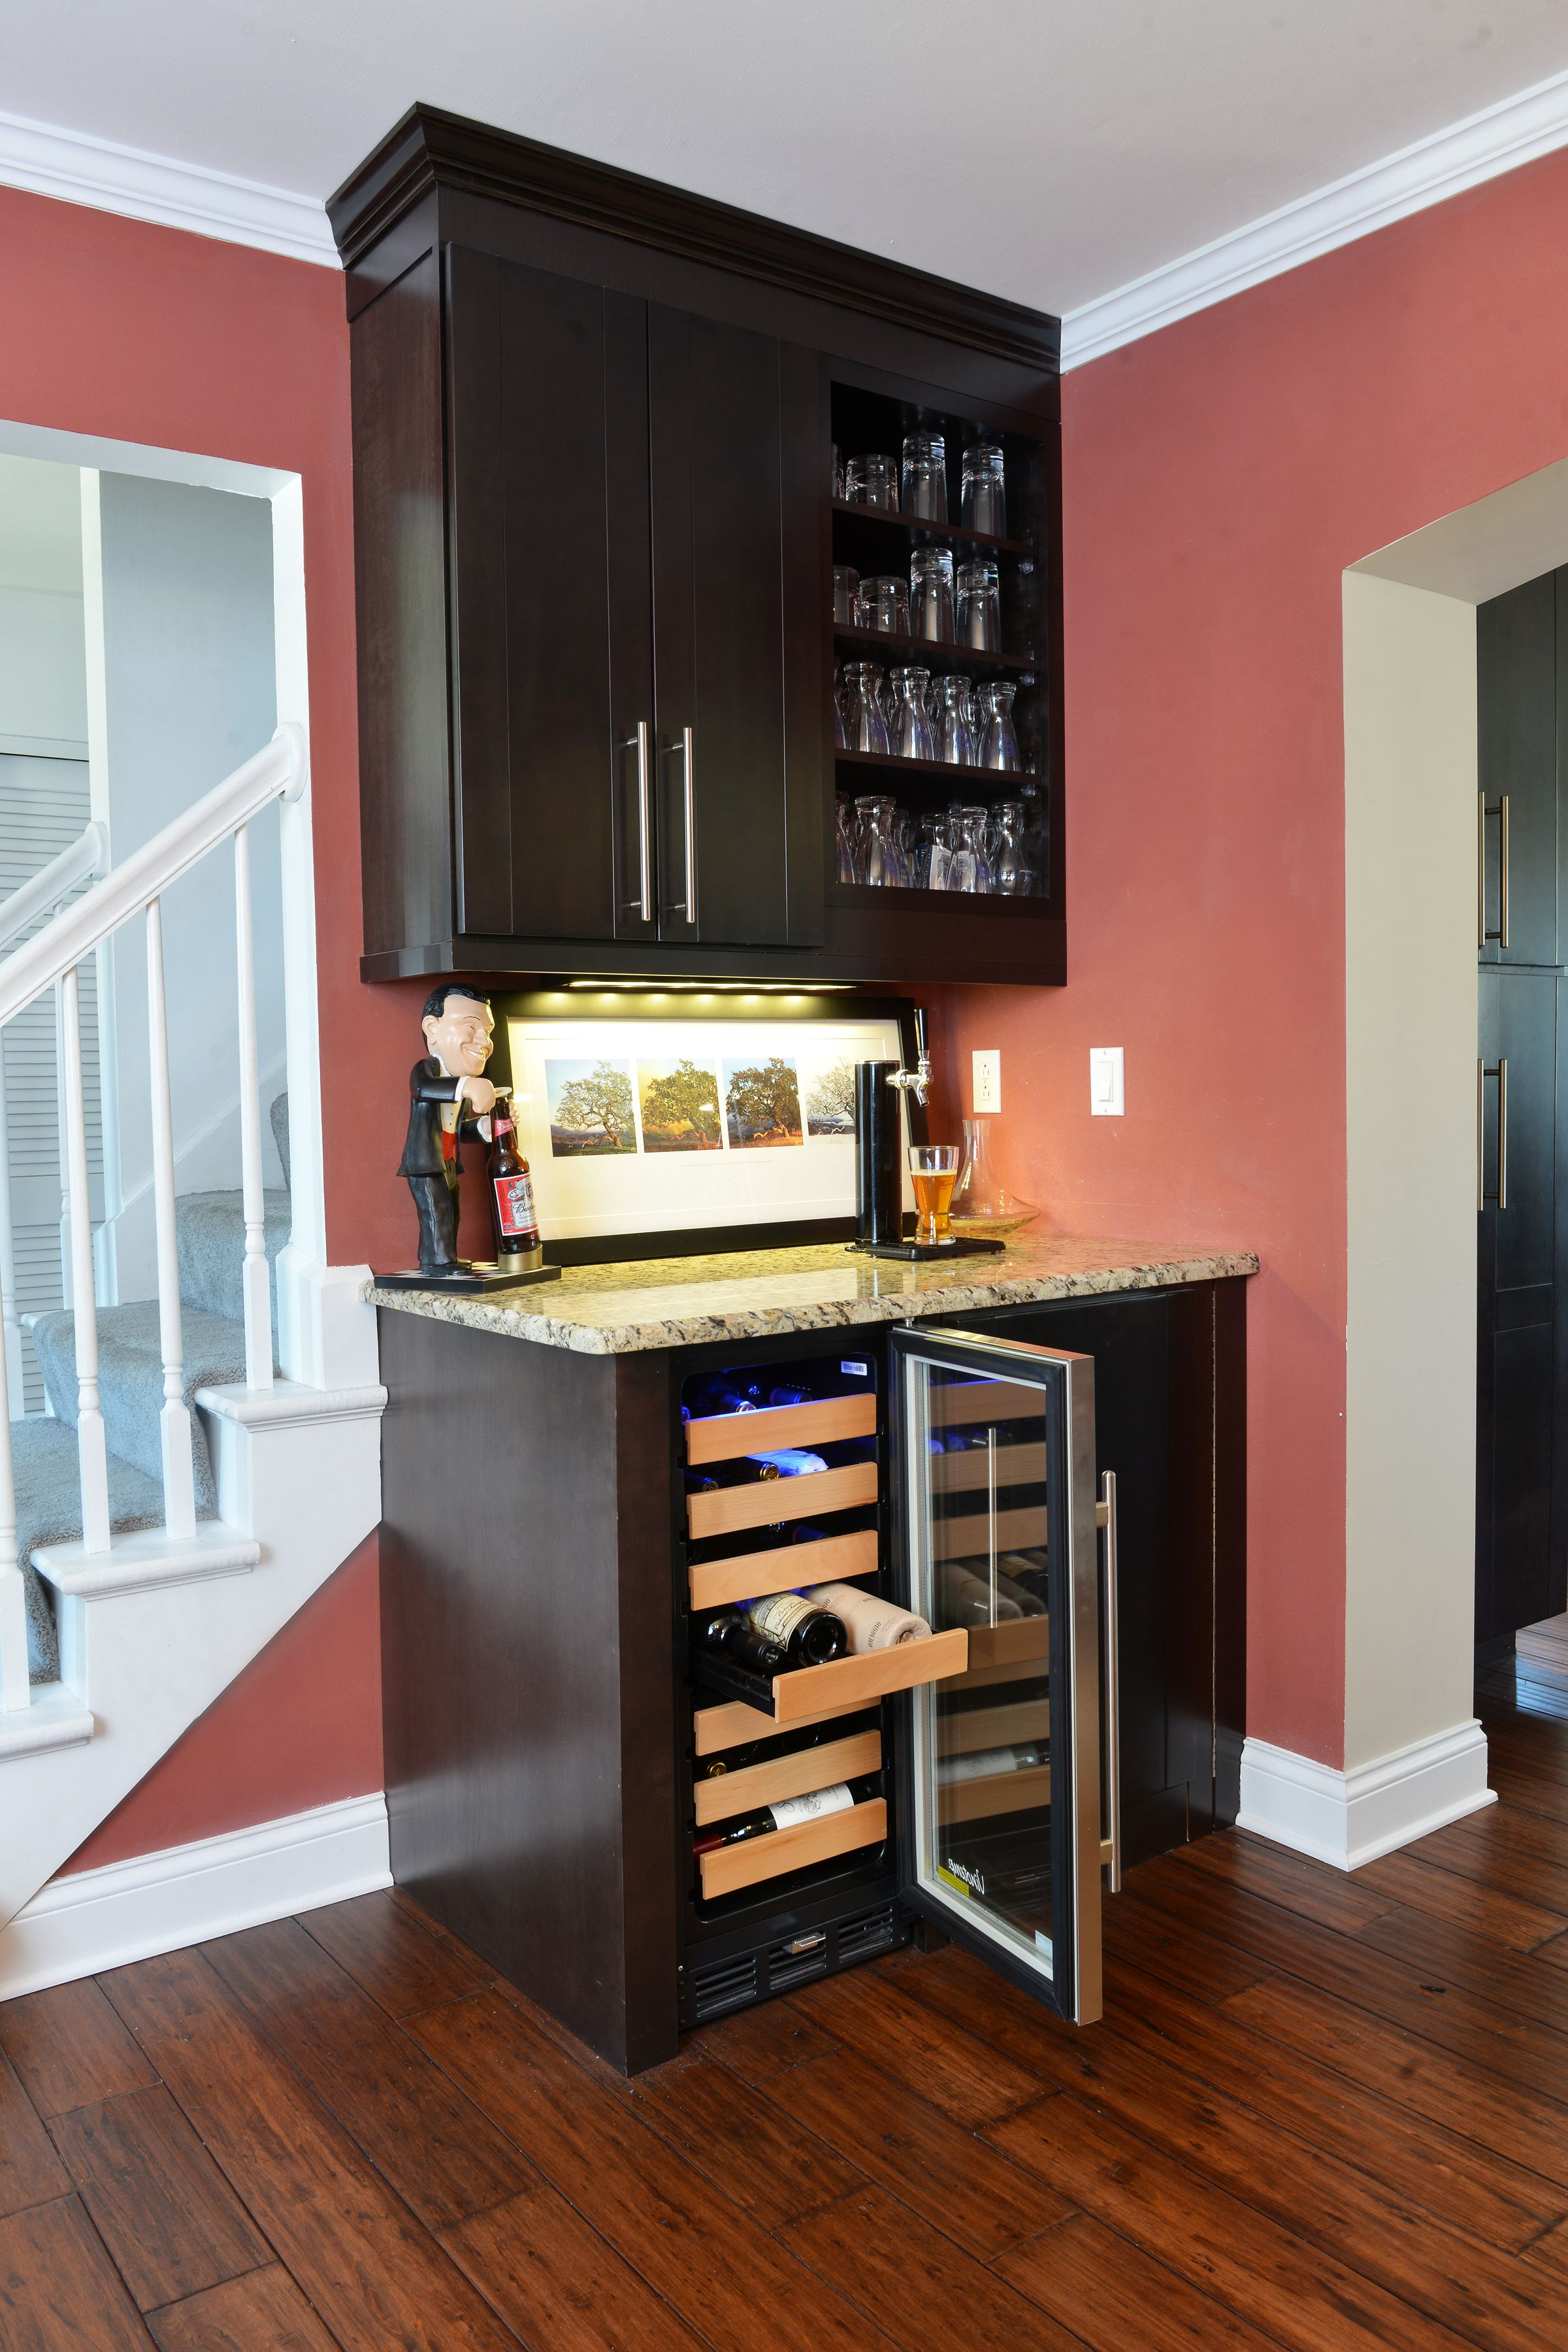 Elegant DH Custom Homes Custom Built Bar Great Features Including Wine Chiller  Drawers, Beer Tap, And Hidden Kegerator!